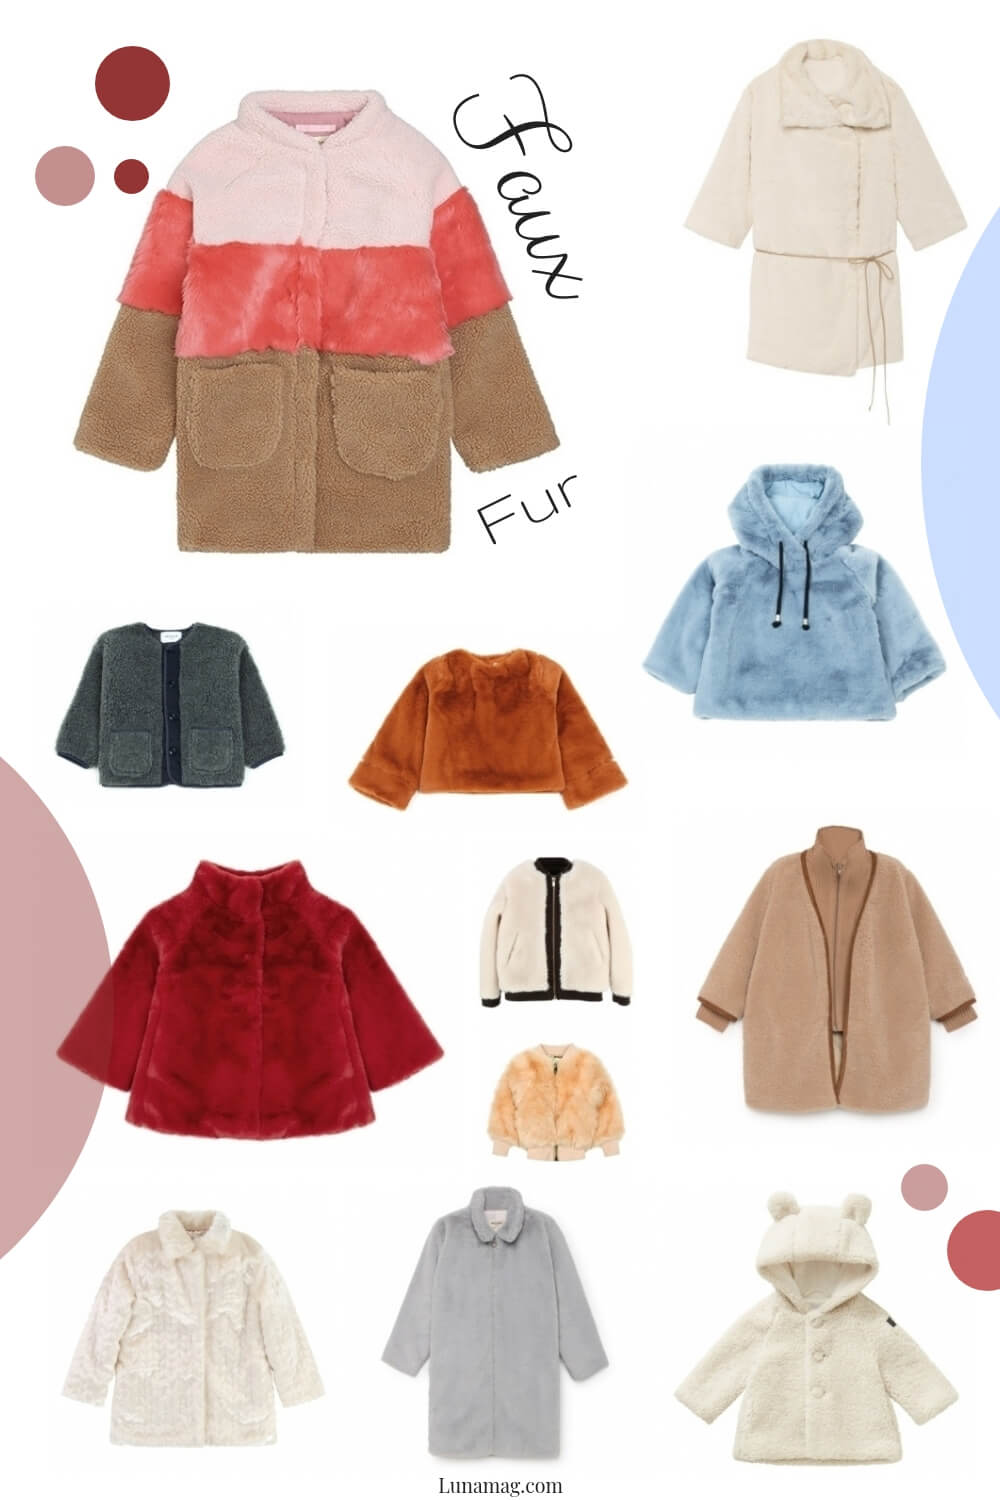 Lunamag.com: faux fur - children fashion trend this winter